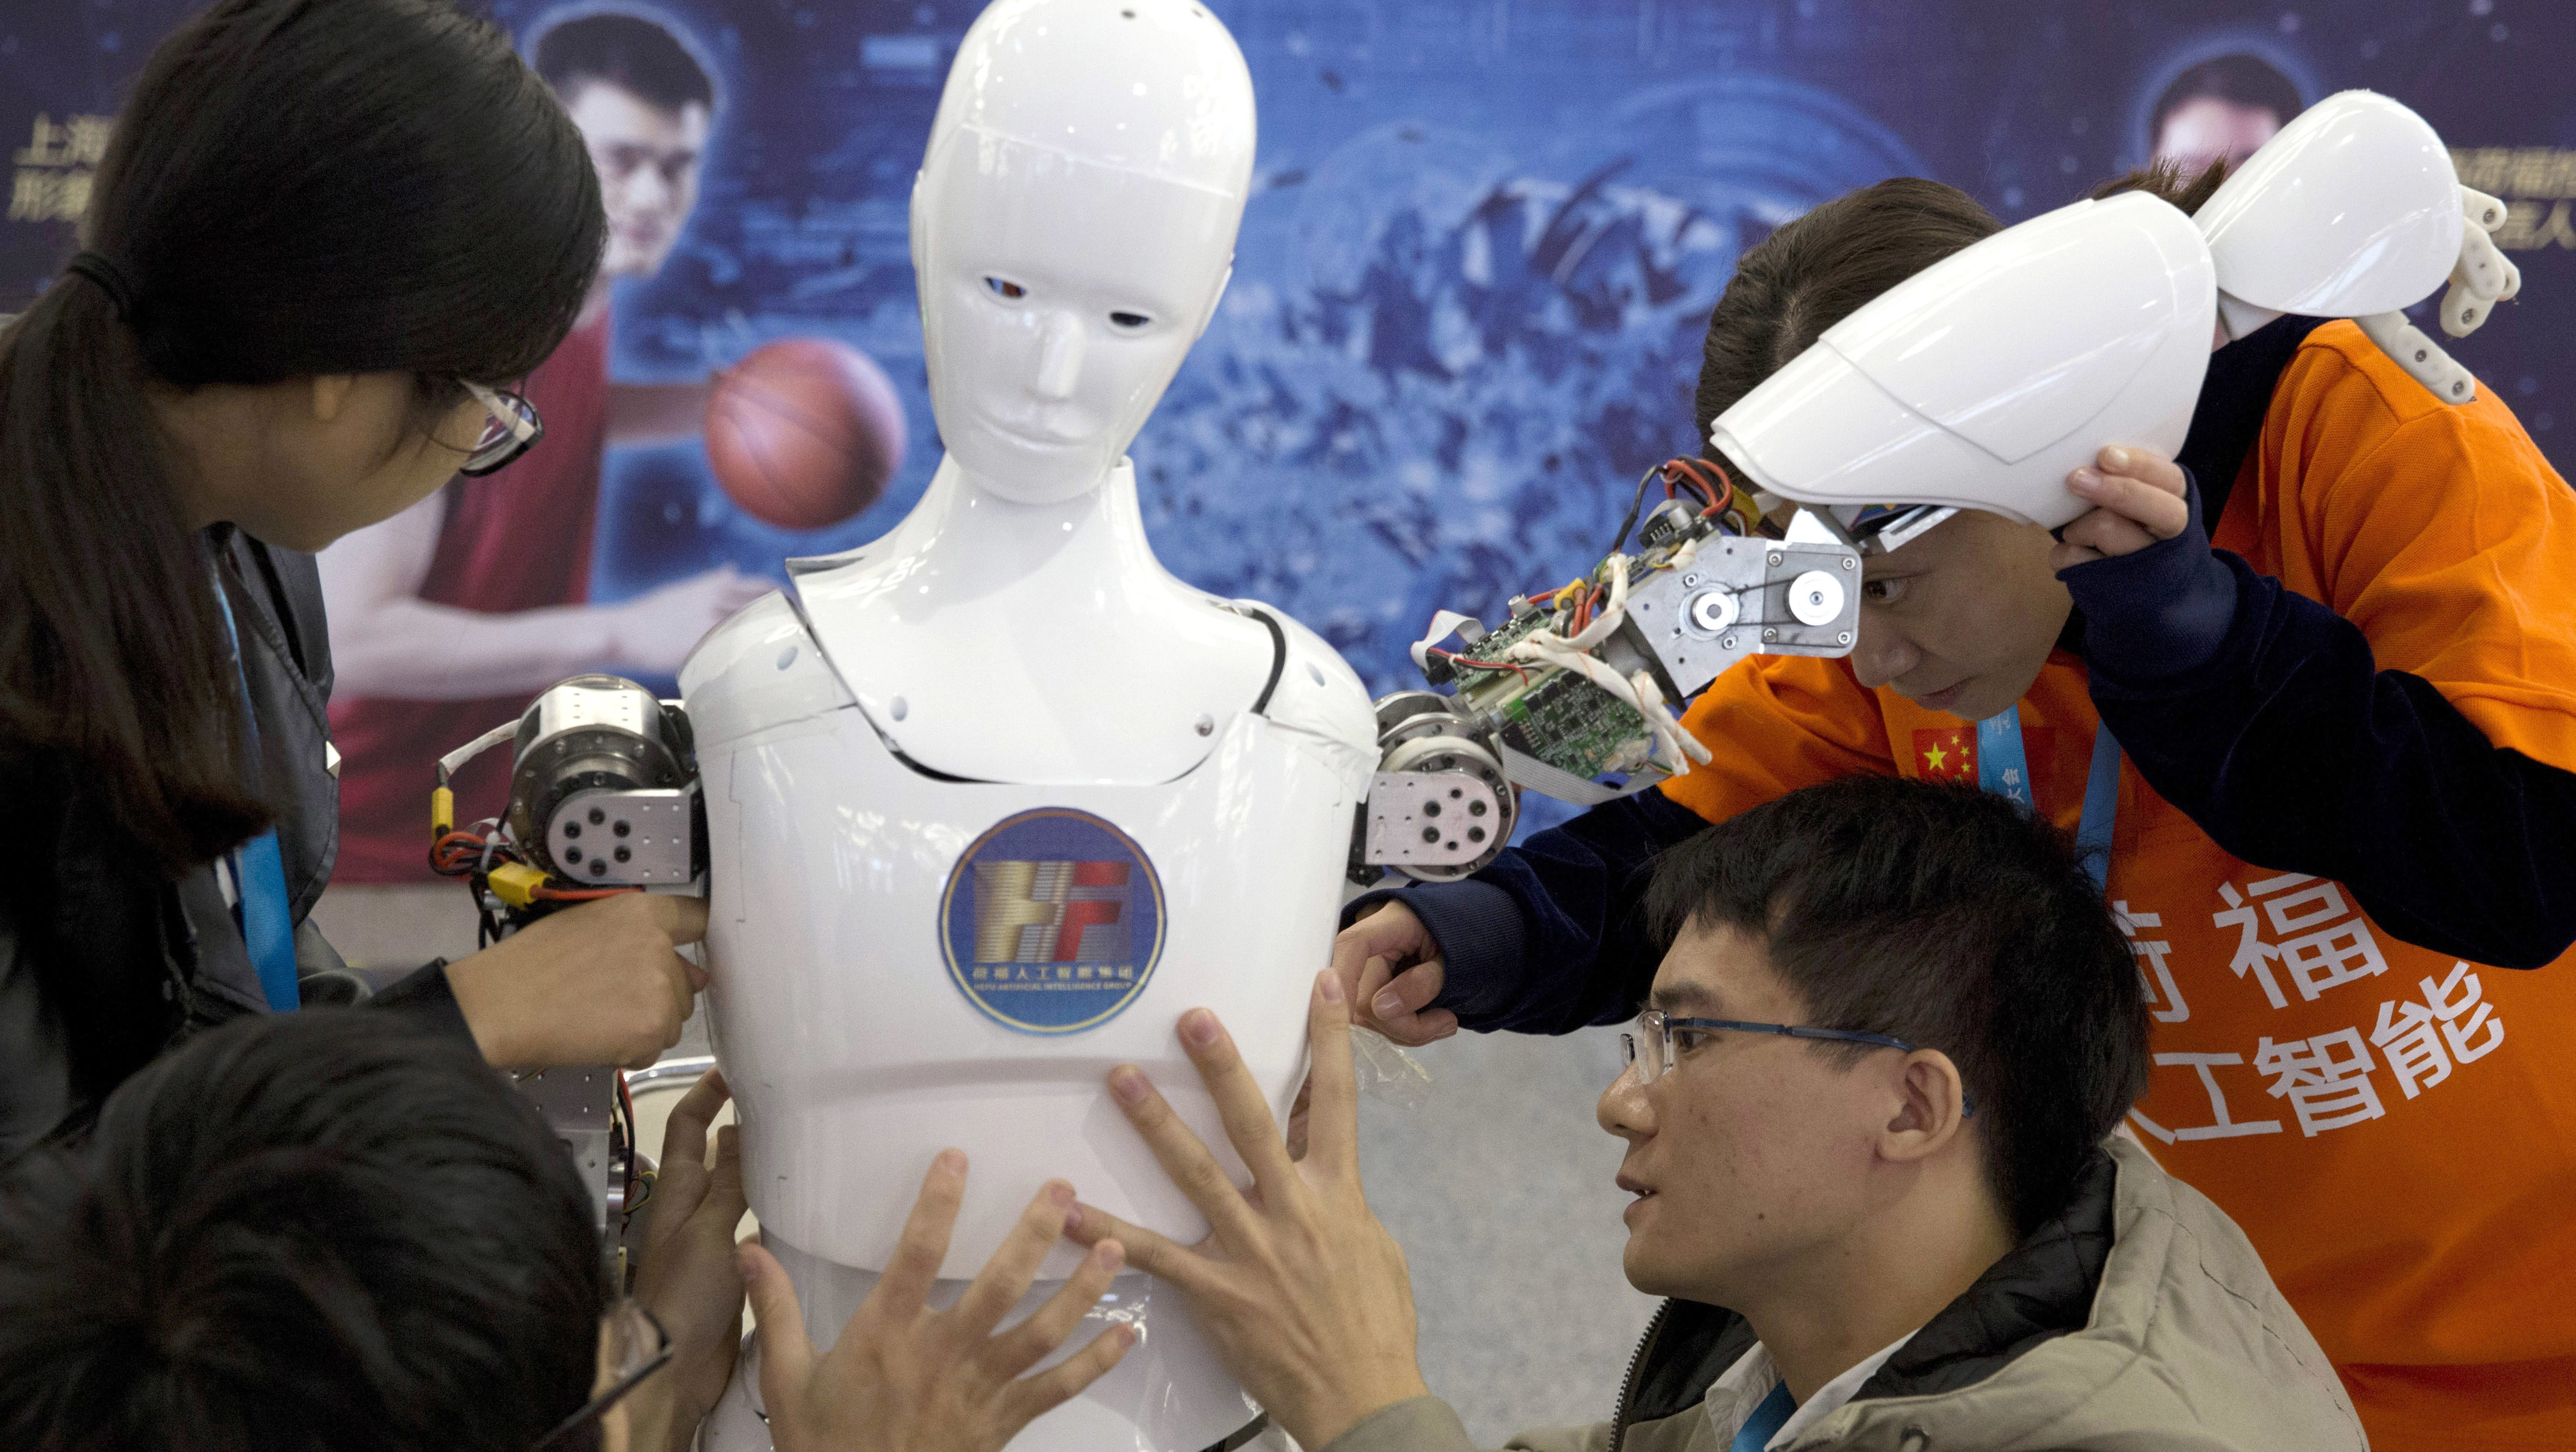 Chinese students work on the Ares, a humanoid bipedal robot designed by them with fundings from a Shanghai investment company, displayed during the World Robot Conference in Beijing. China's government announced Thursday, July 21, 2017, a goal of transforming the country into a global leader in artificial intelligence in just over a decade, putting additional political support behind growing investment by Chinese companies in developing self-driving cars and other advances.